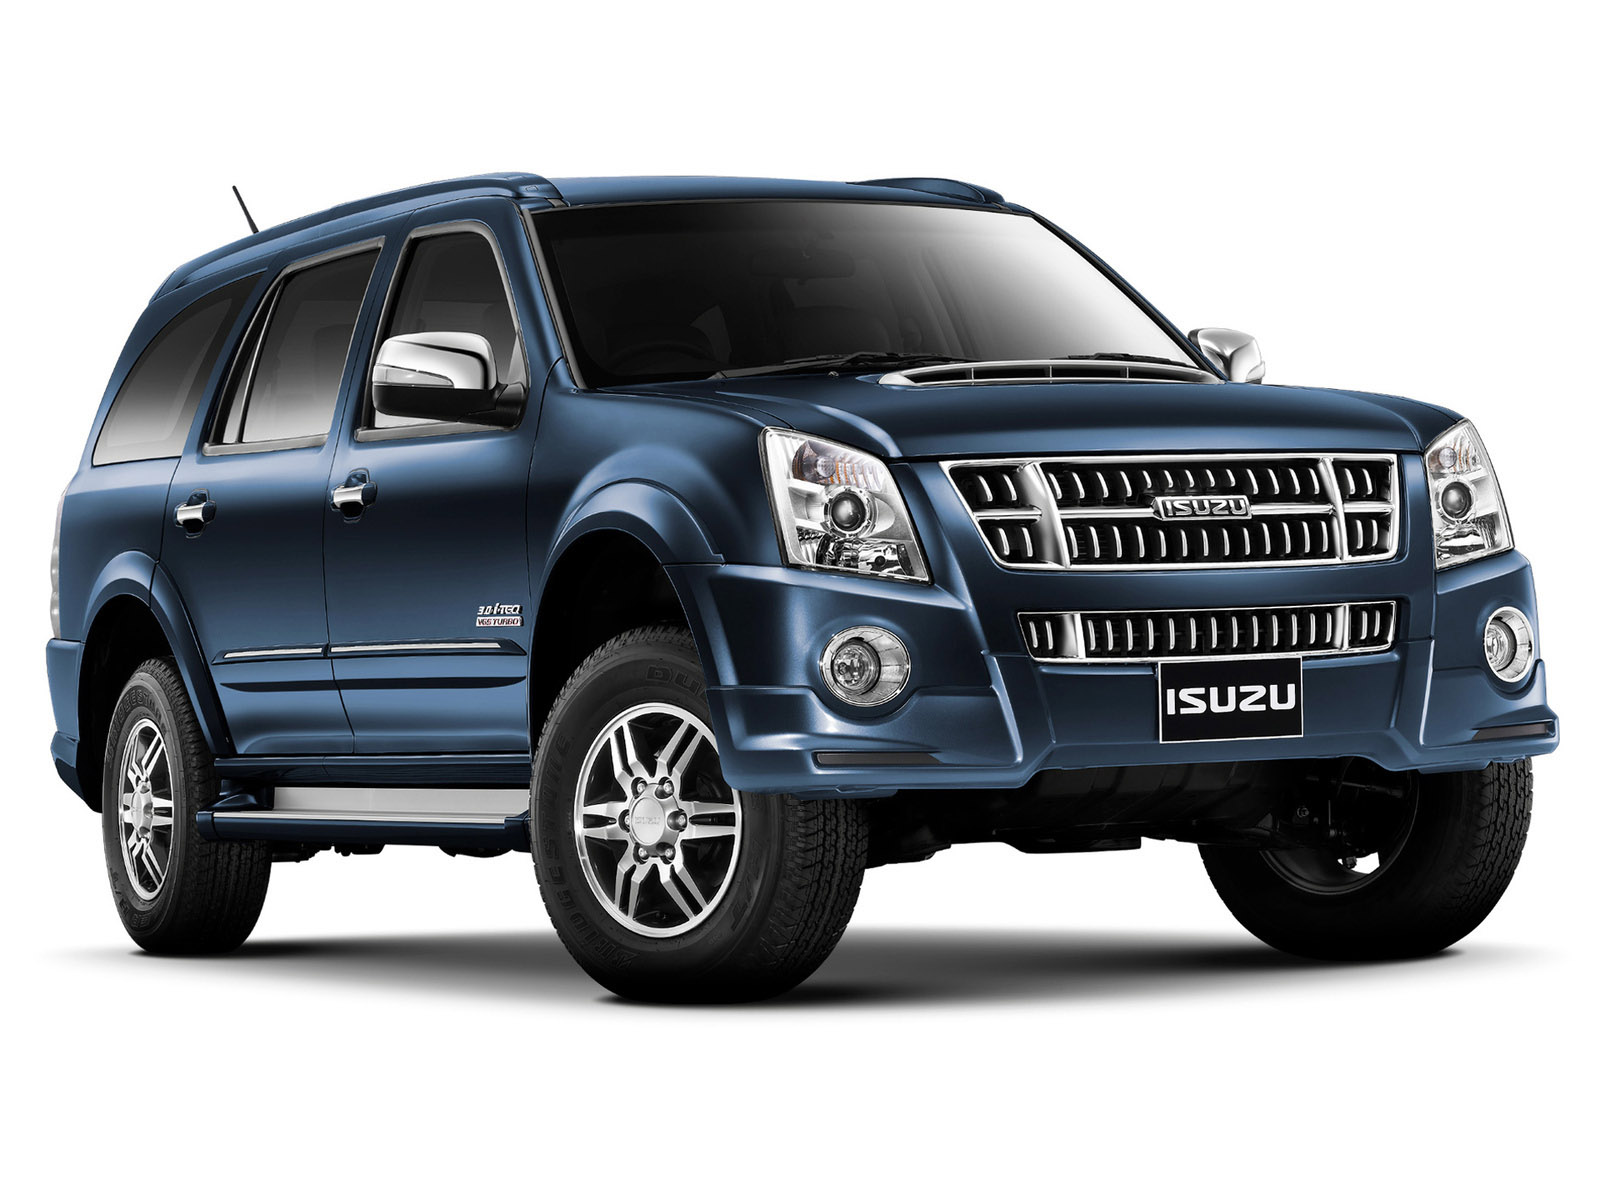 Japanese car maker Isuzu which is the latest entrant in the Indian